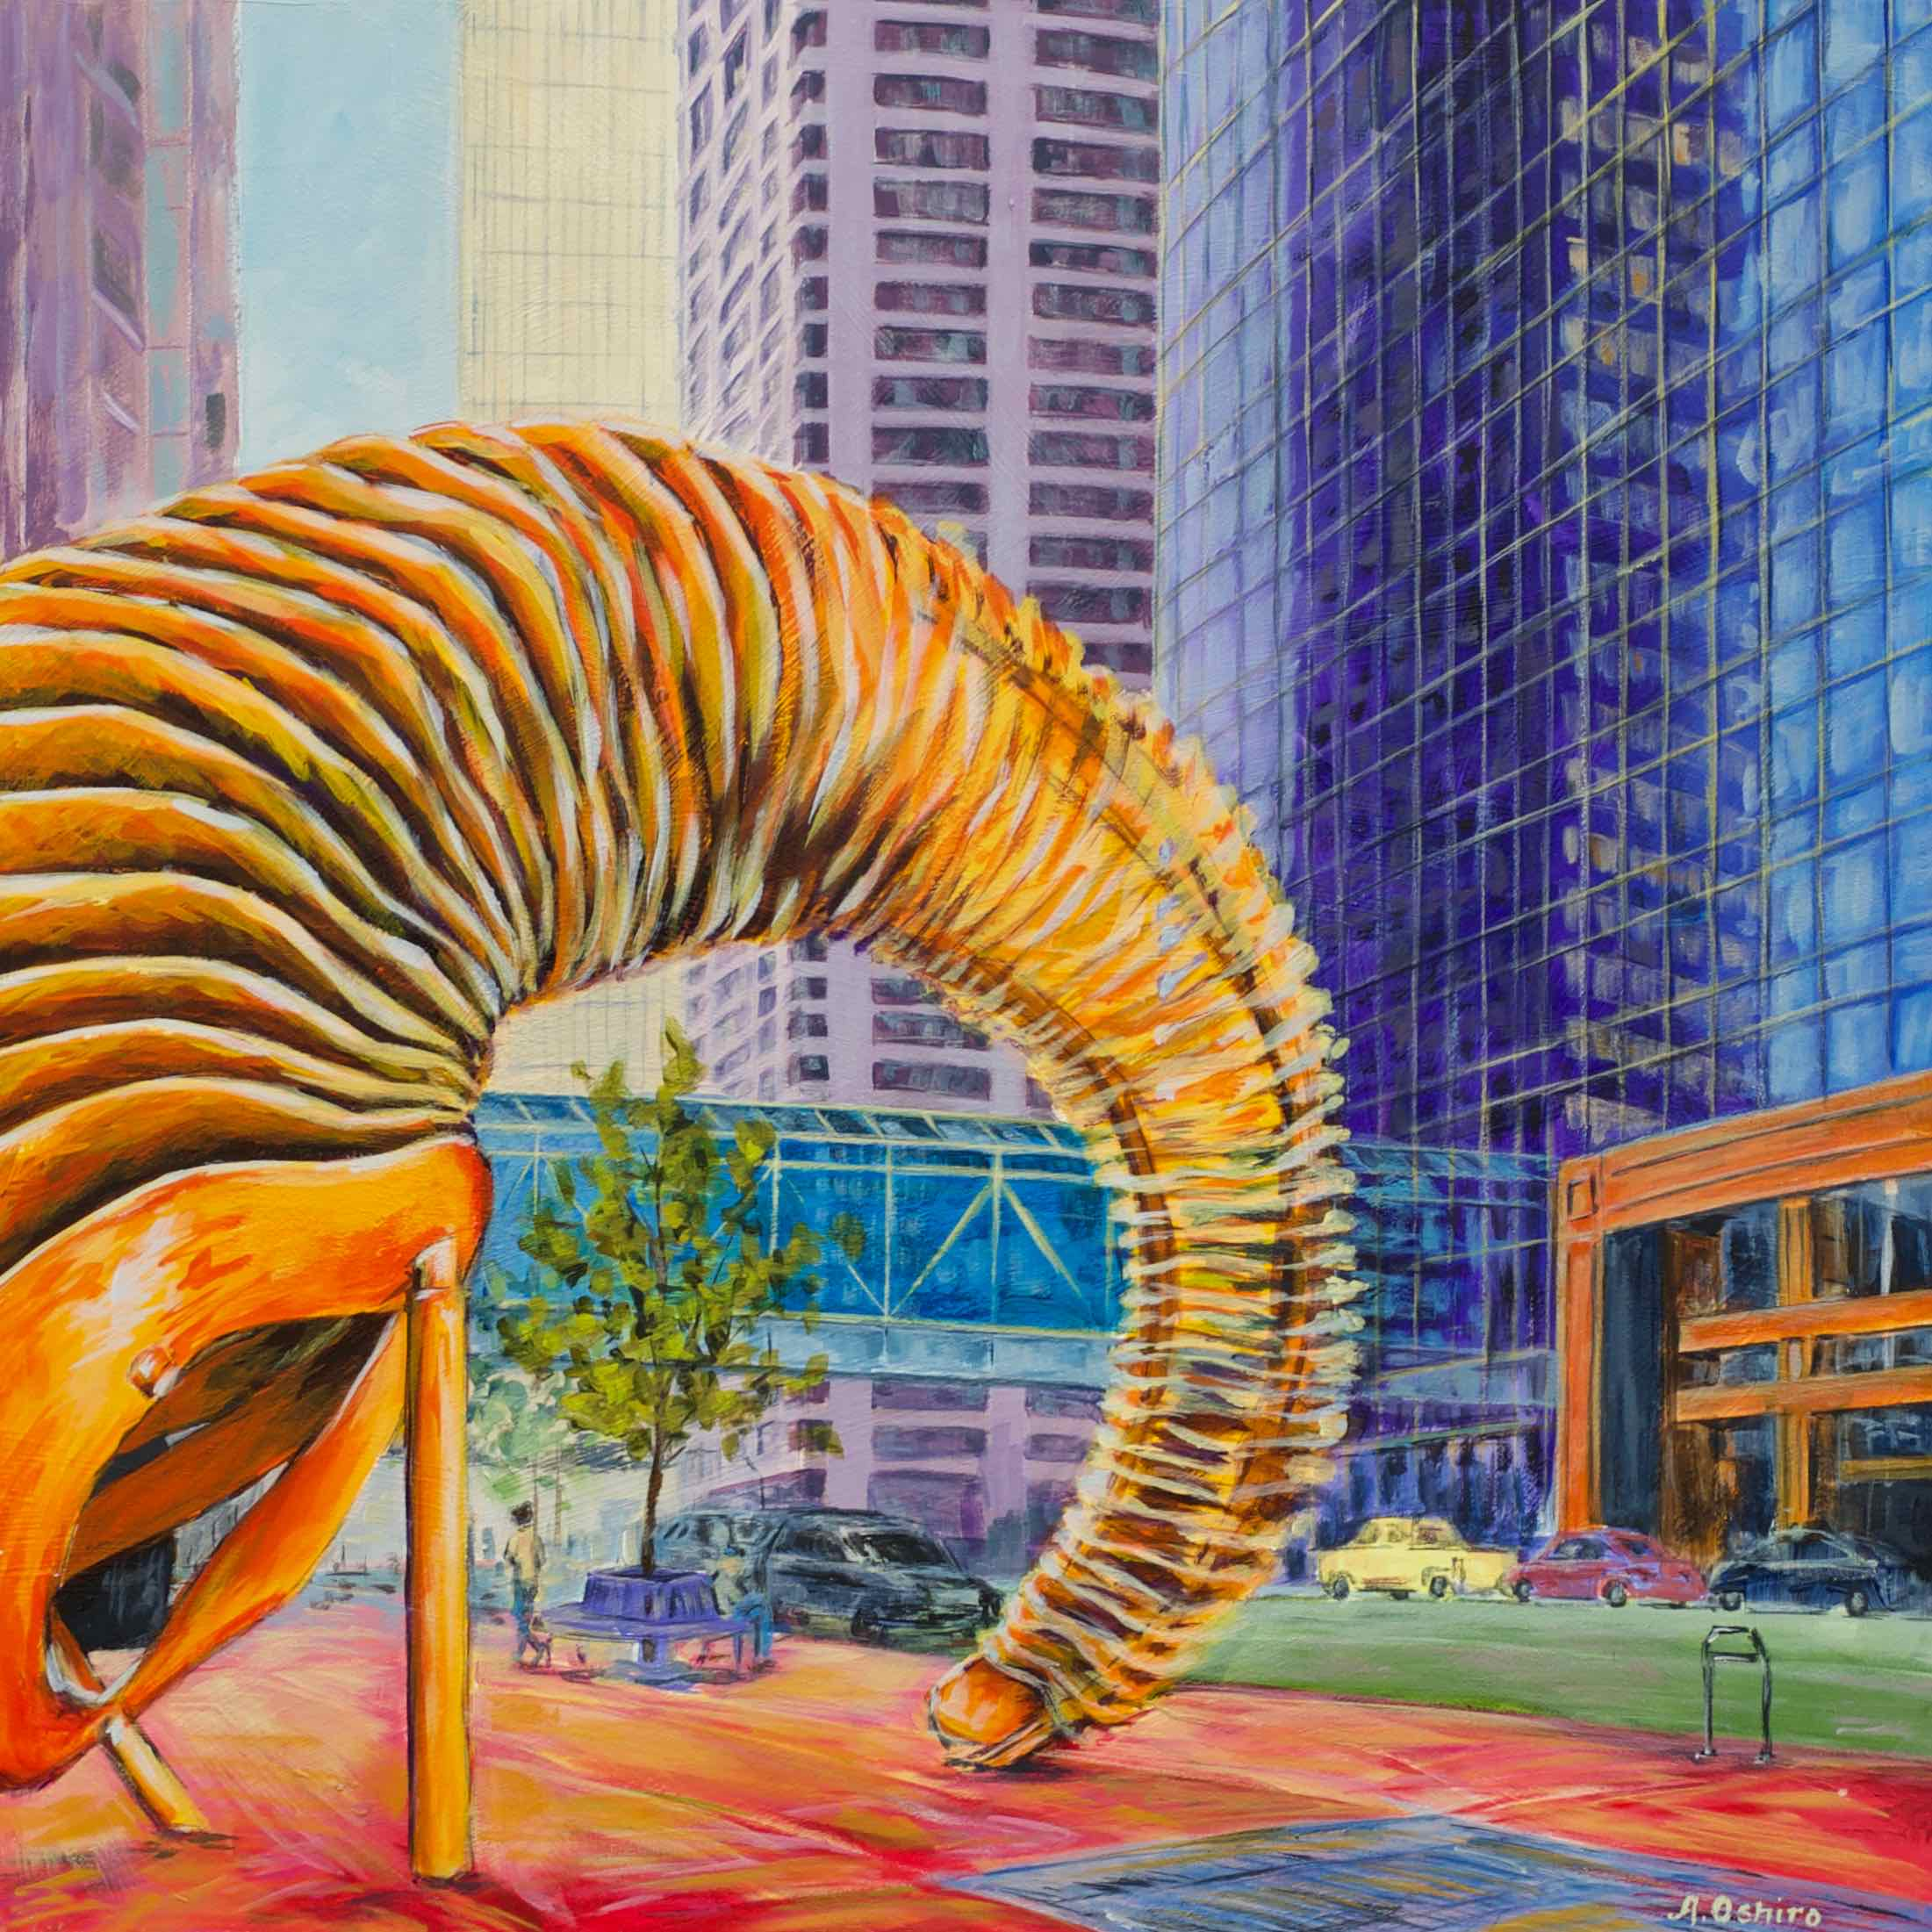 """- No. 8 – '4th Ave. and 1st St. SW'20x20"""" Acrylic on Cradled Birch Panel""""Weaving Fence and Horn"""" by Ontario artist John McEwan is made entirely of recycled steel and was installed June 2002 in front of TransCanada Tower. This piece was inspired by a rocky mountain sheep's horn. In this painting, TransCanada Tower and Fifth Avenue Place are joined by Calgary's Plus 15 system, pedestrian bridges built approximately 15 feet above street level."""